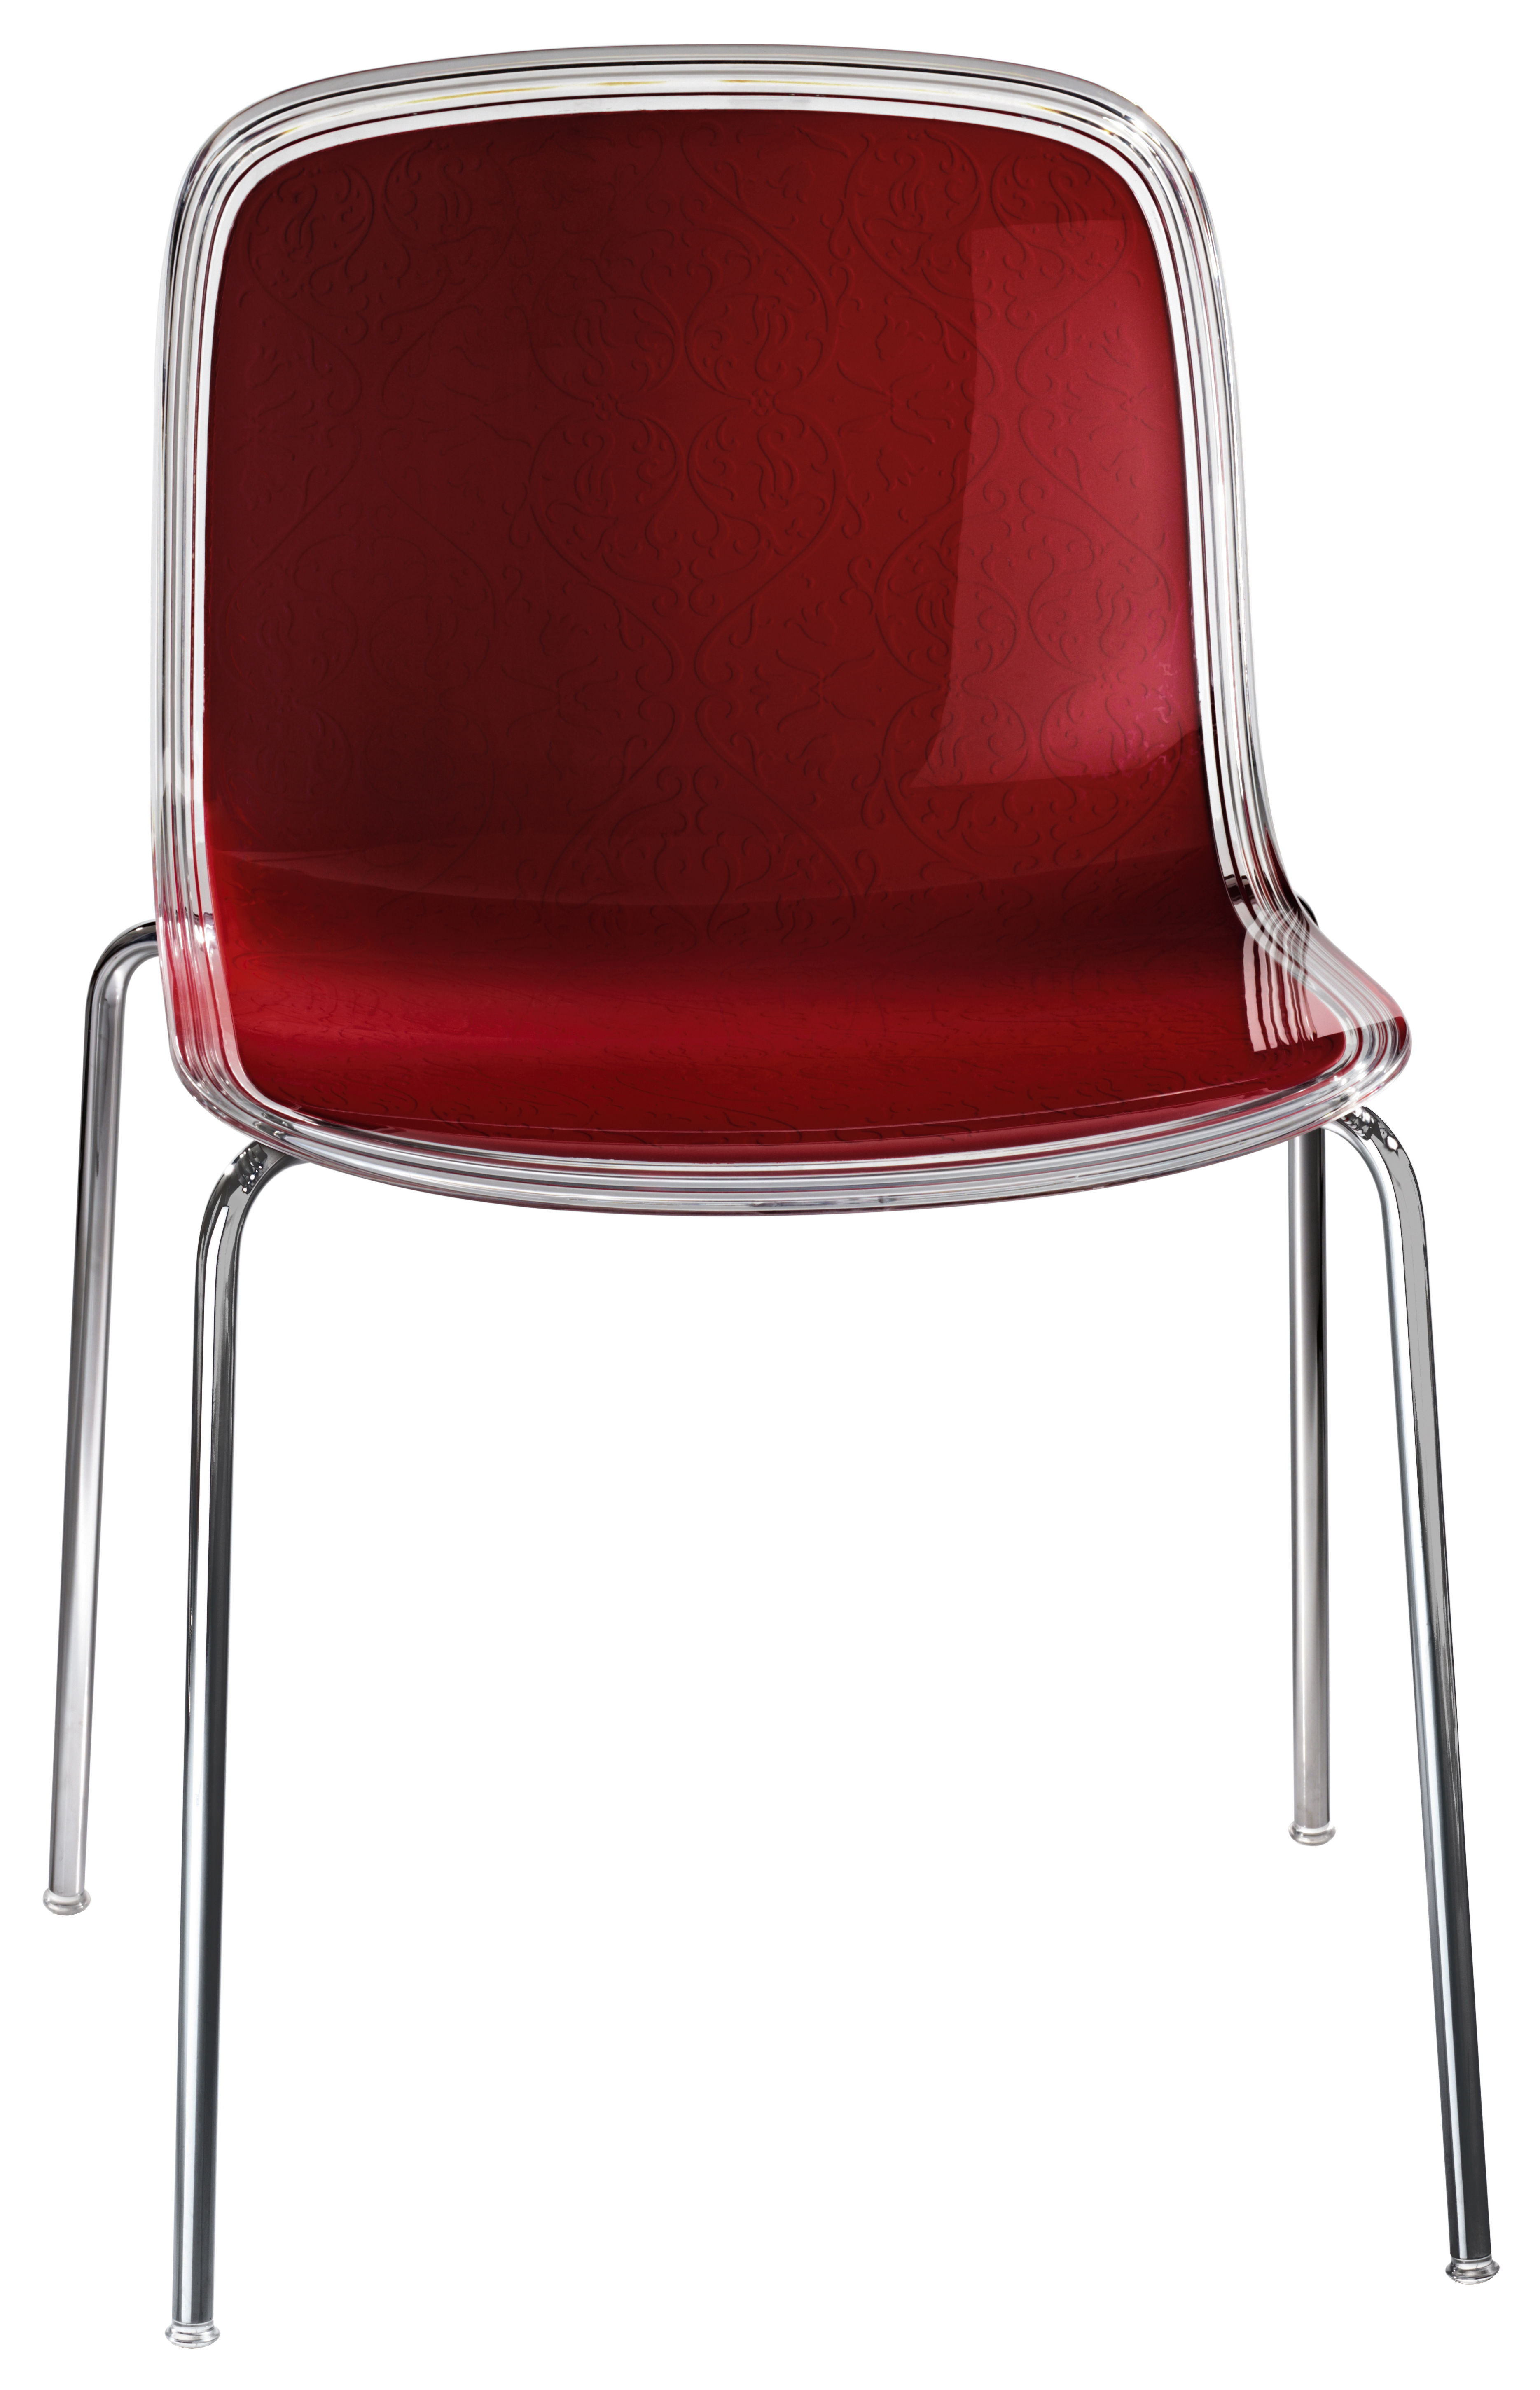 Chaise empilable troy plastique assise transparente avec arri re rouge magis - Chaise rouge transparente ...